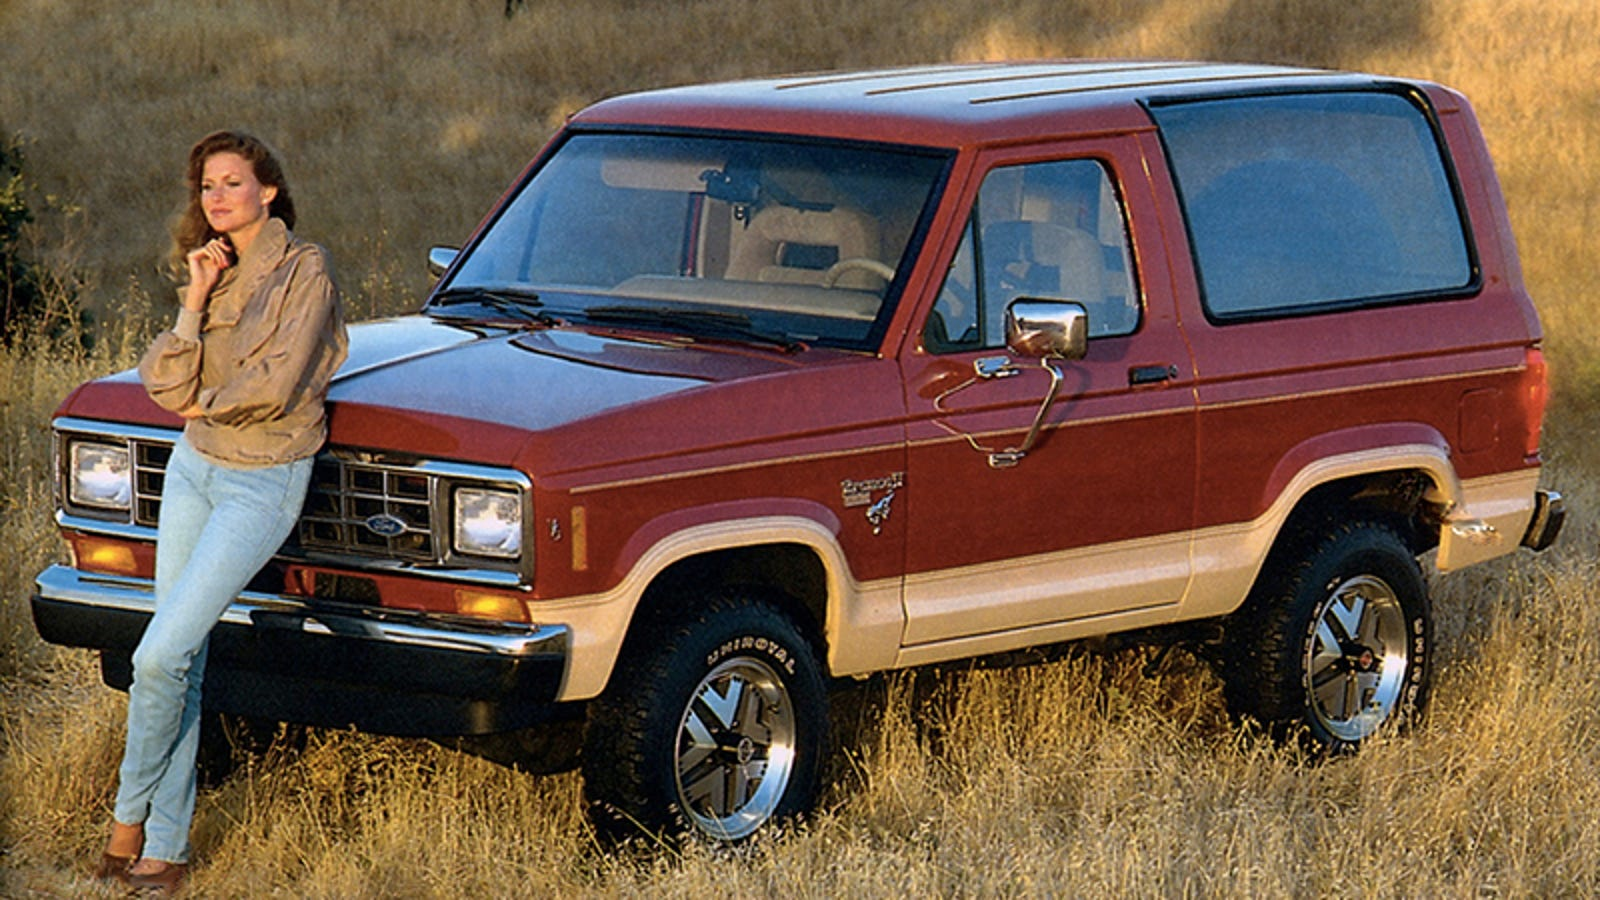 Will the ford bronco ii ever get a chance to be cool